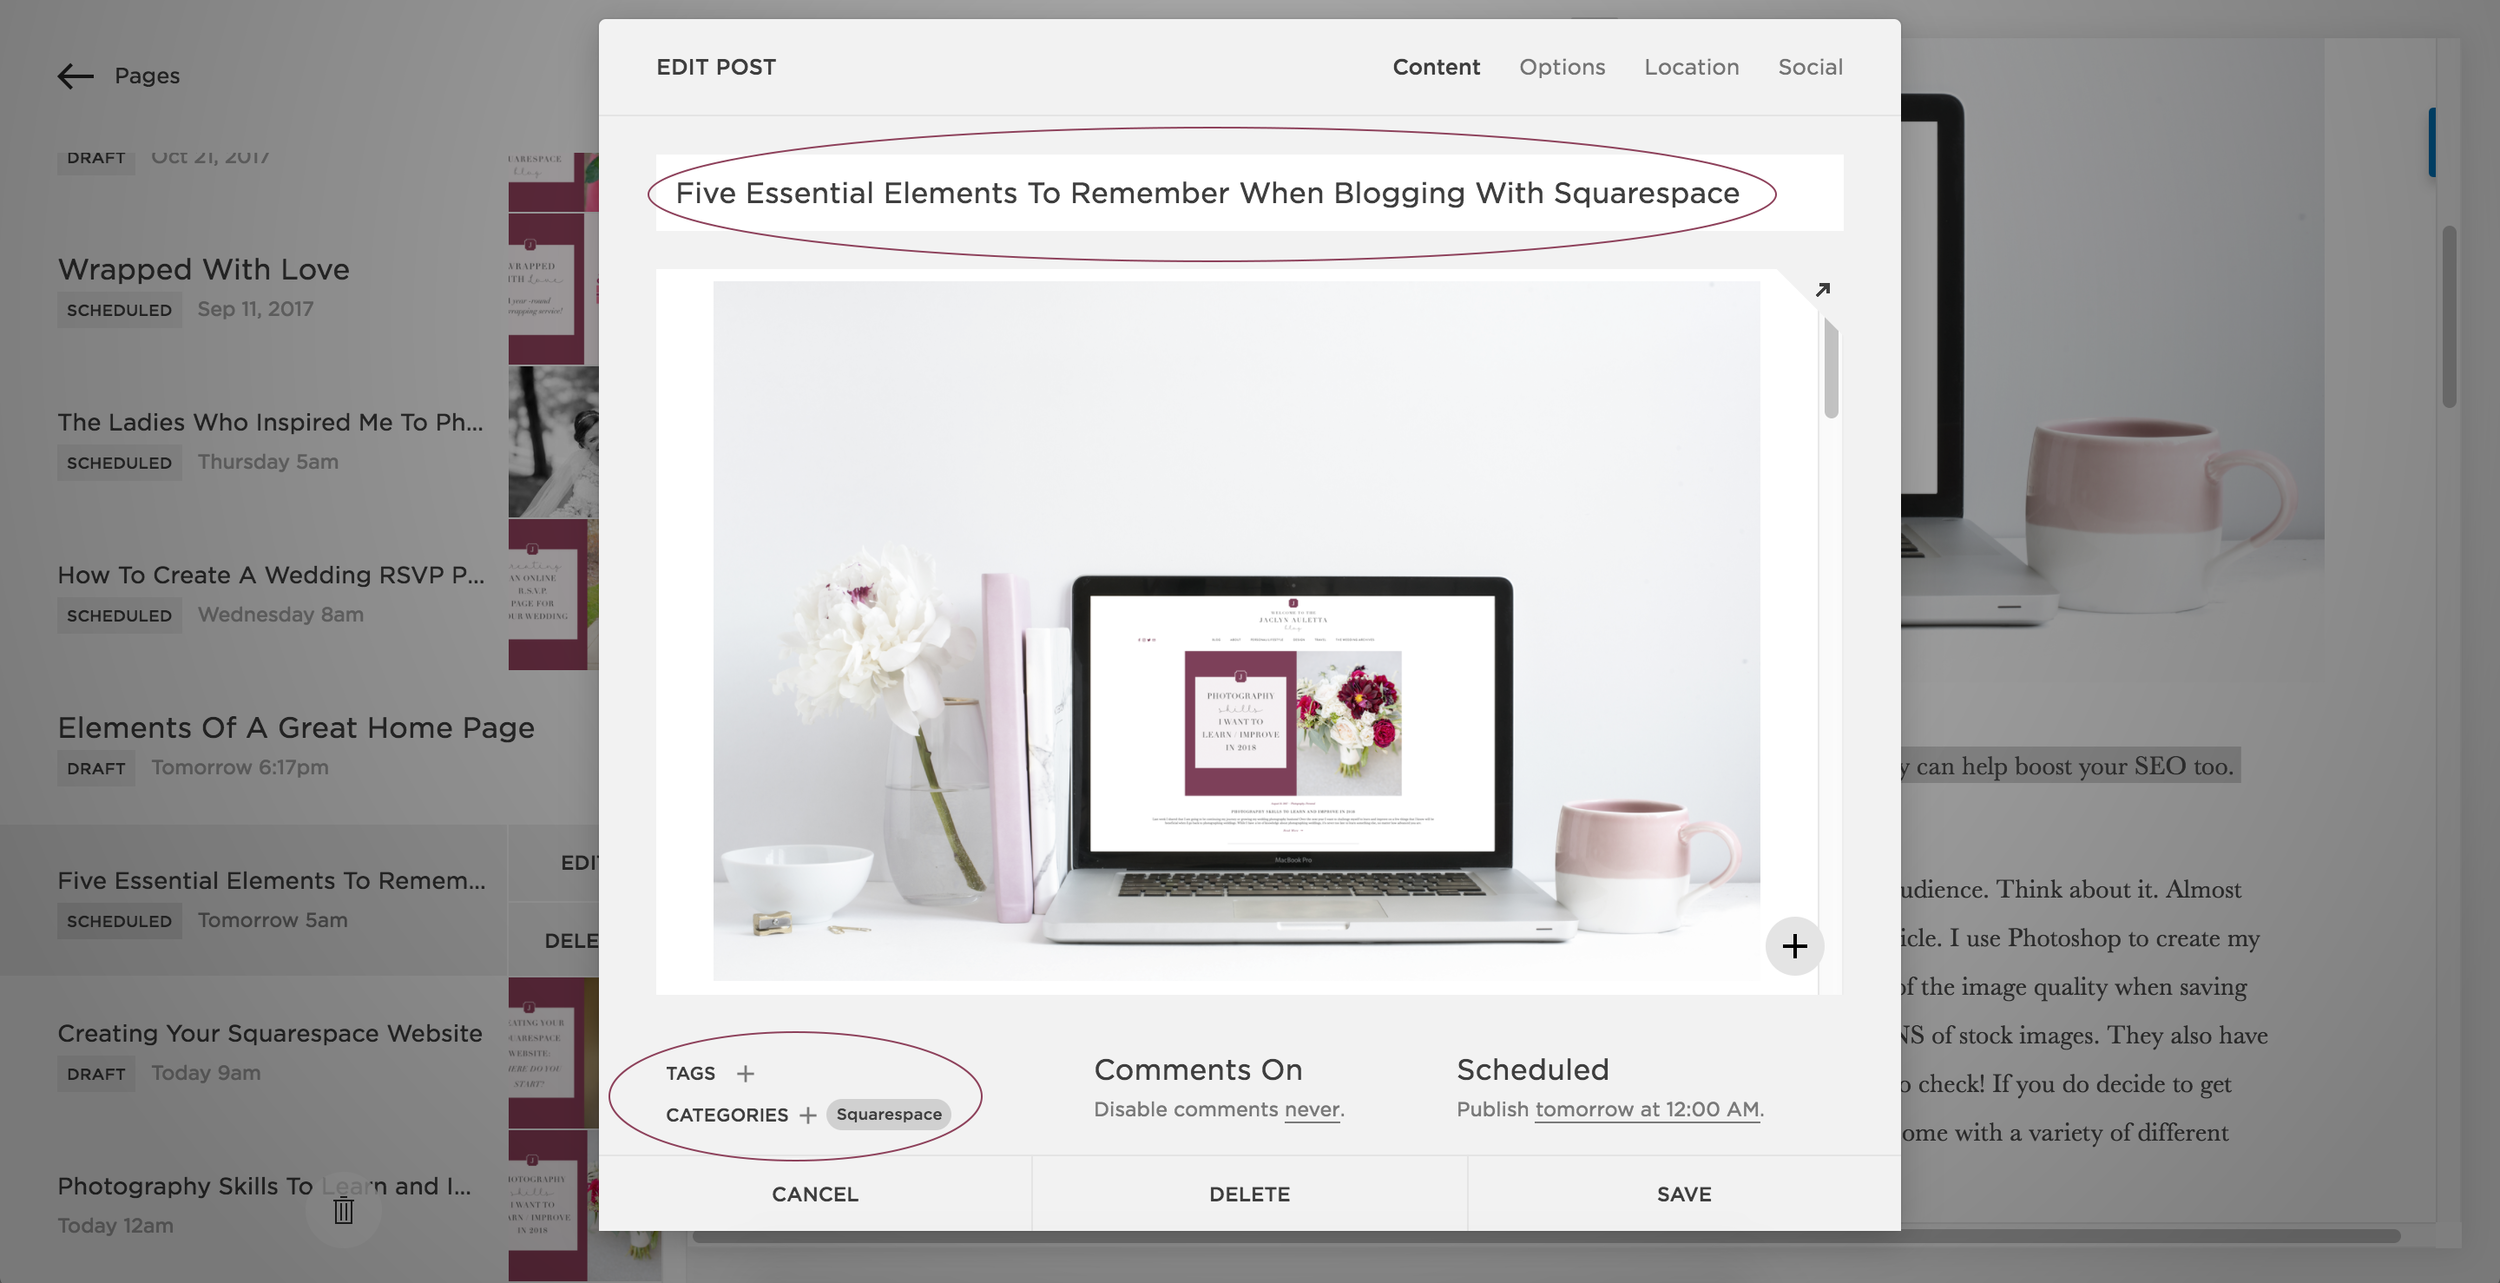 tags-categories-squarespace.png